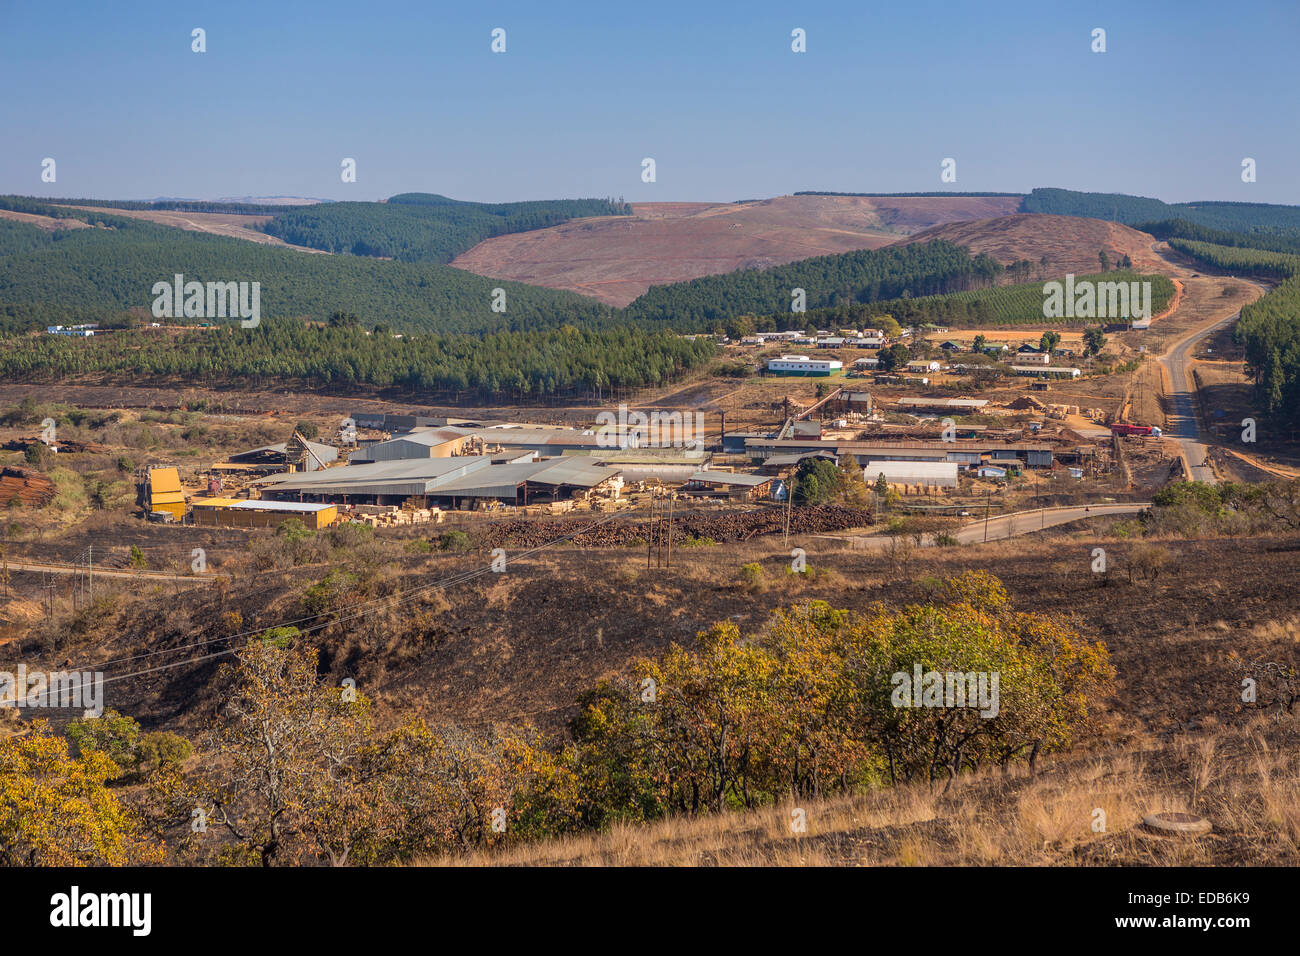 HHOHHO, SWAZILAND, AFRICA - Sawmill and tree plantation clear cutting Stock Photo